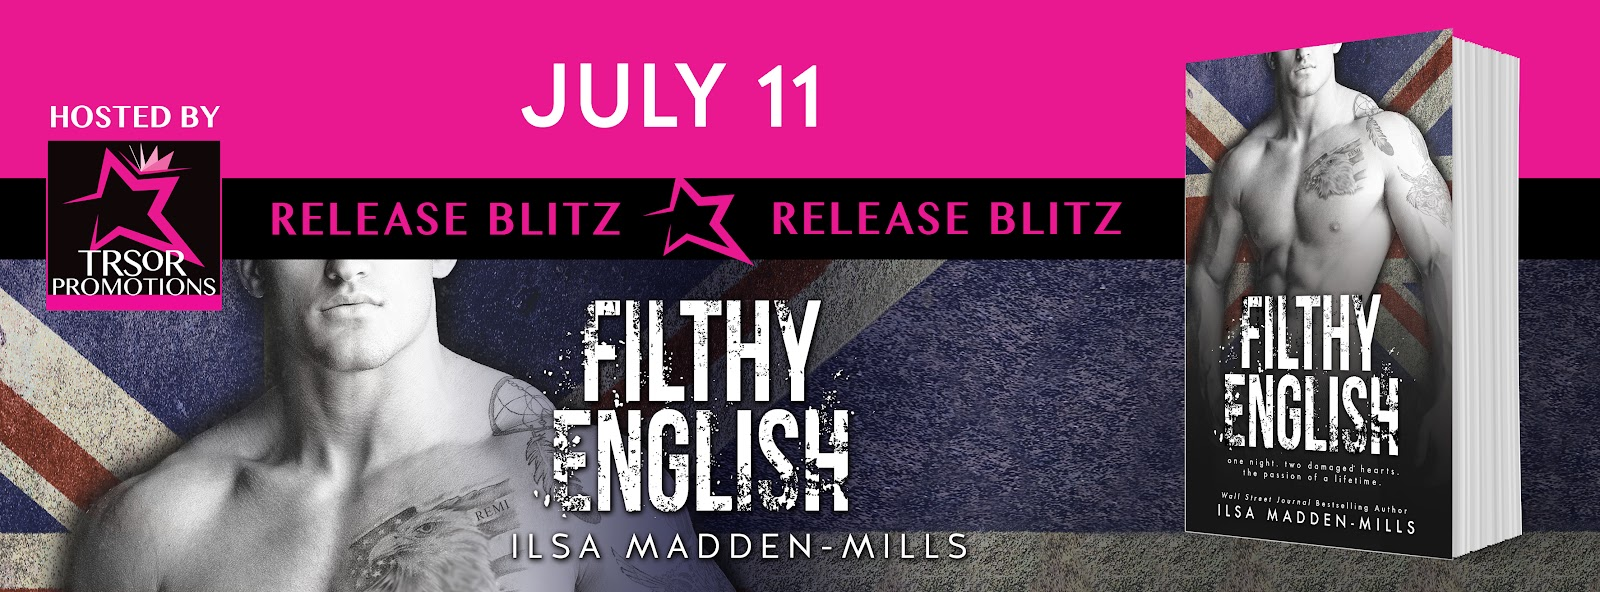 FILTHY_ENGLISH_RELEASE_BLITZ.jpg